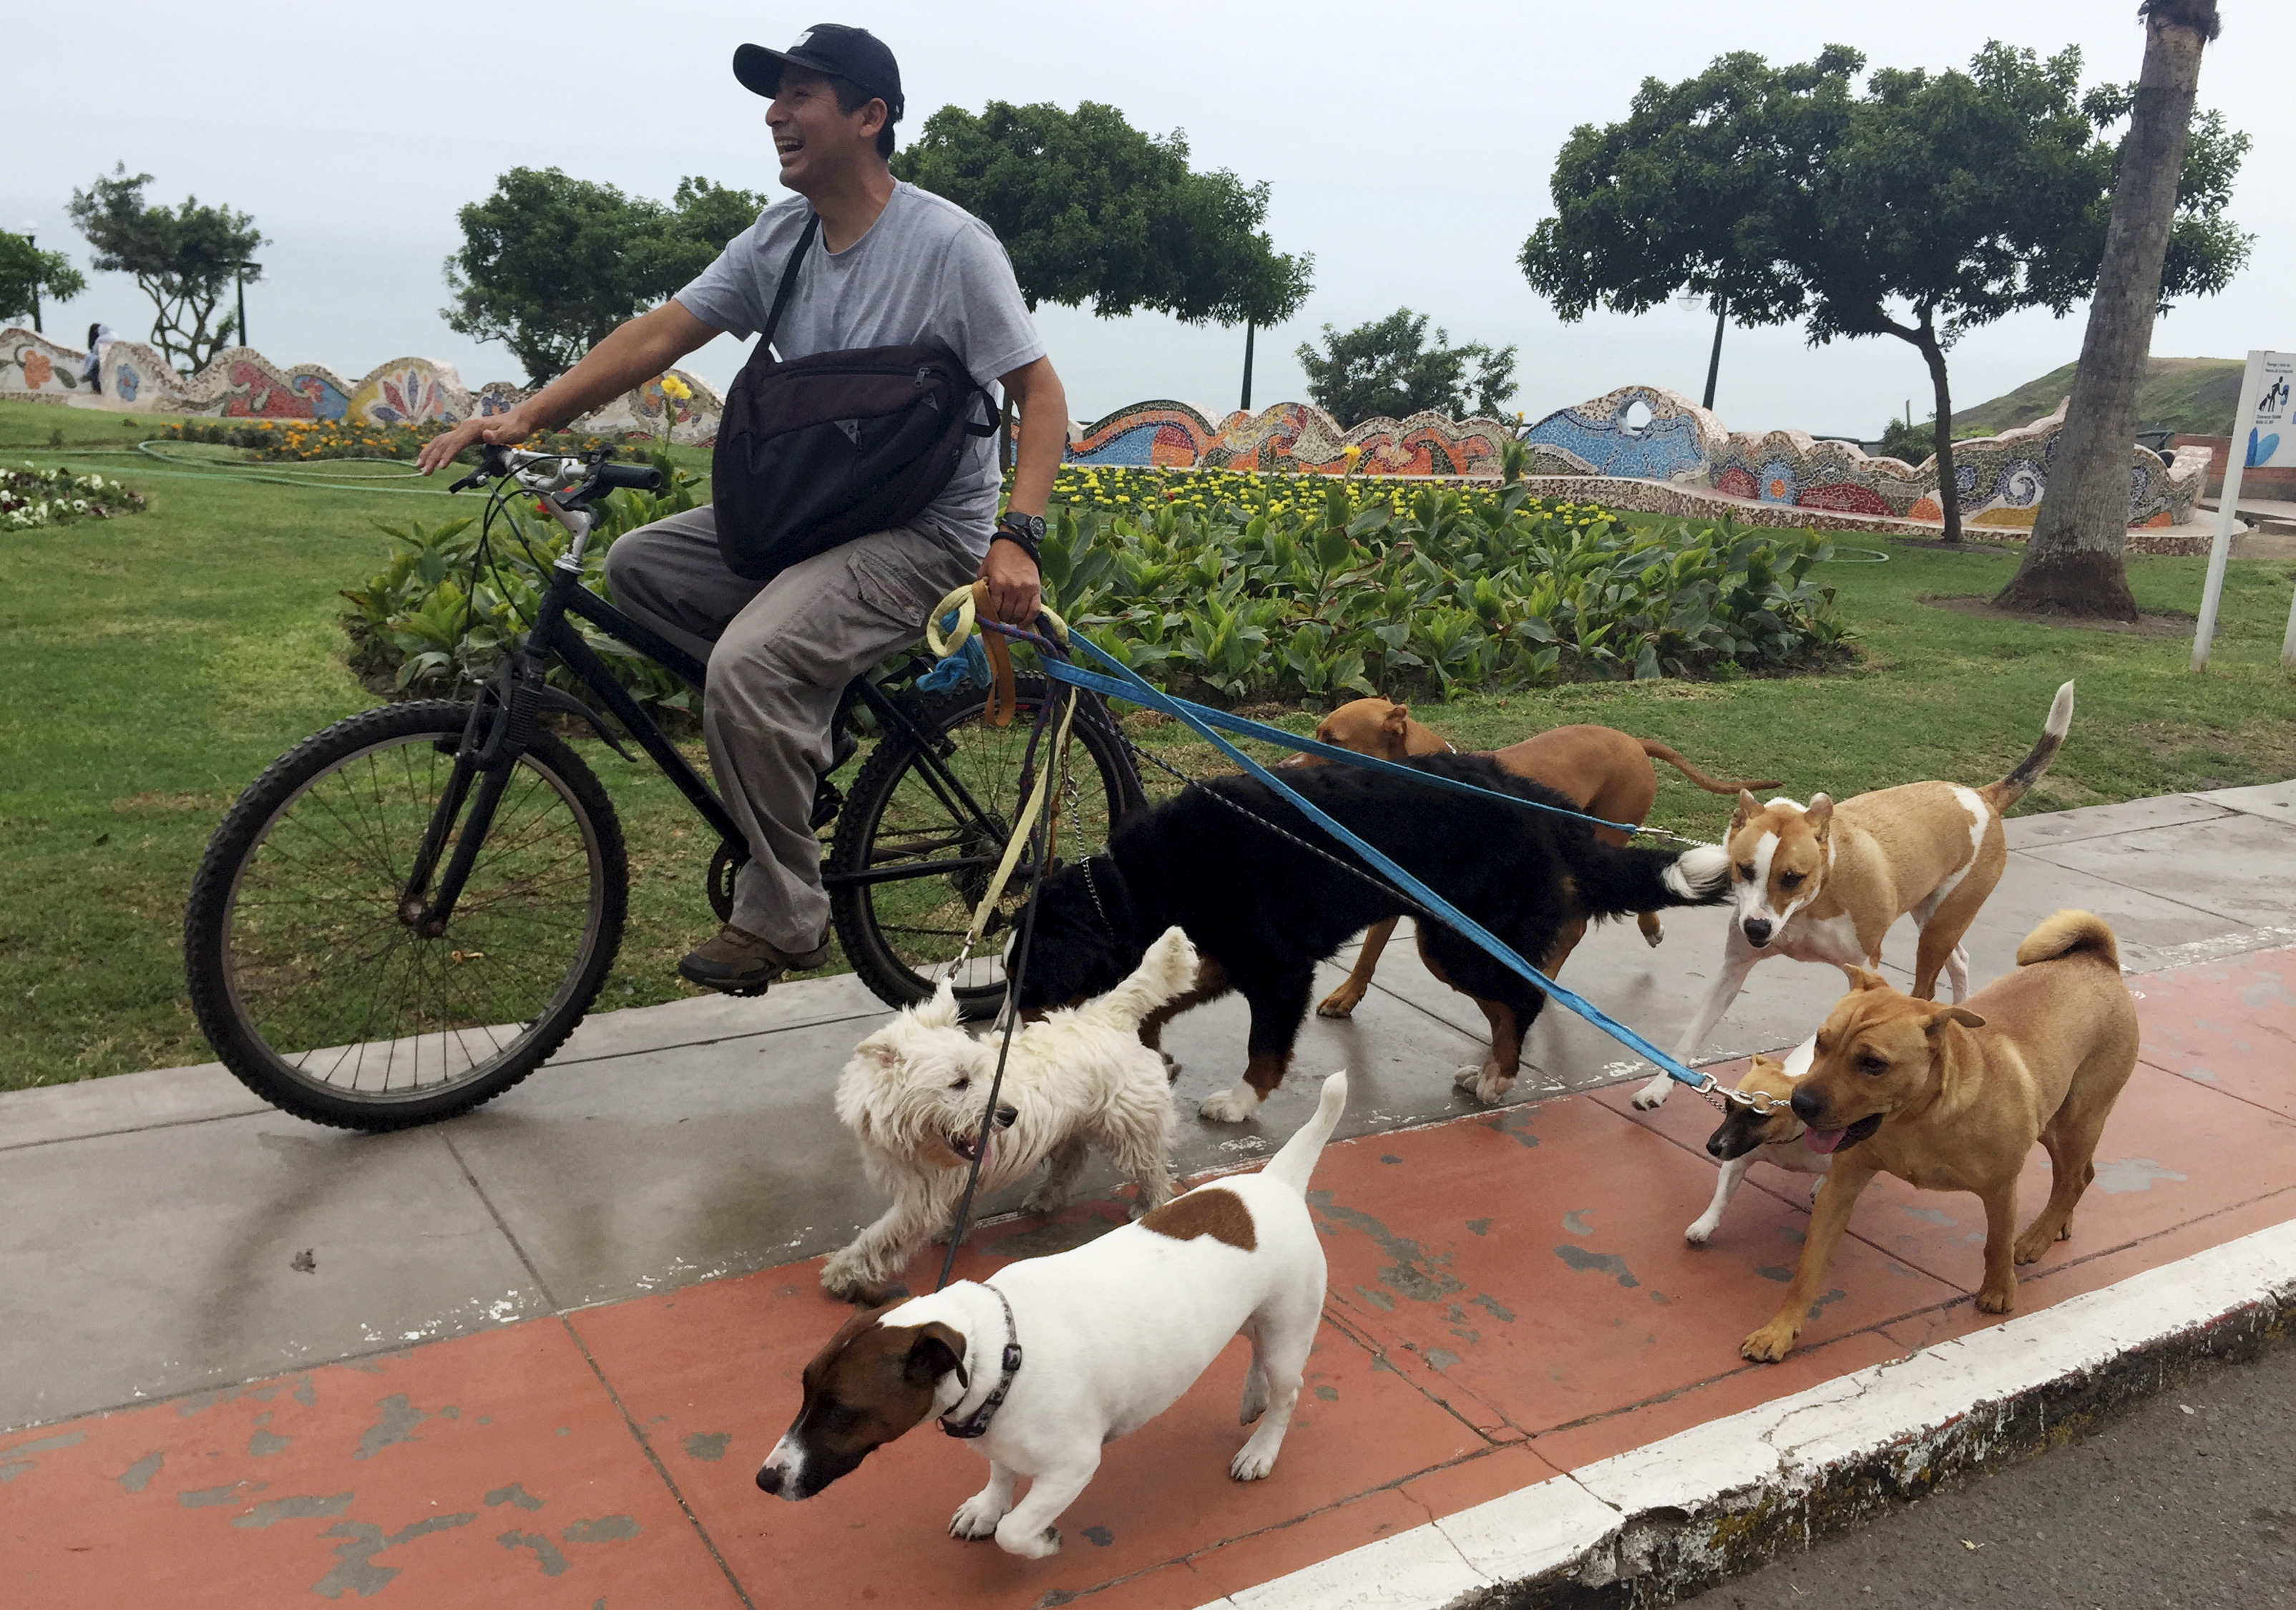 A dog-walker takes dogs out for a walk in a street in Lima's Miraflores district